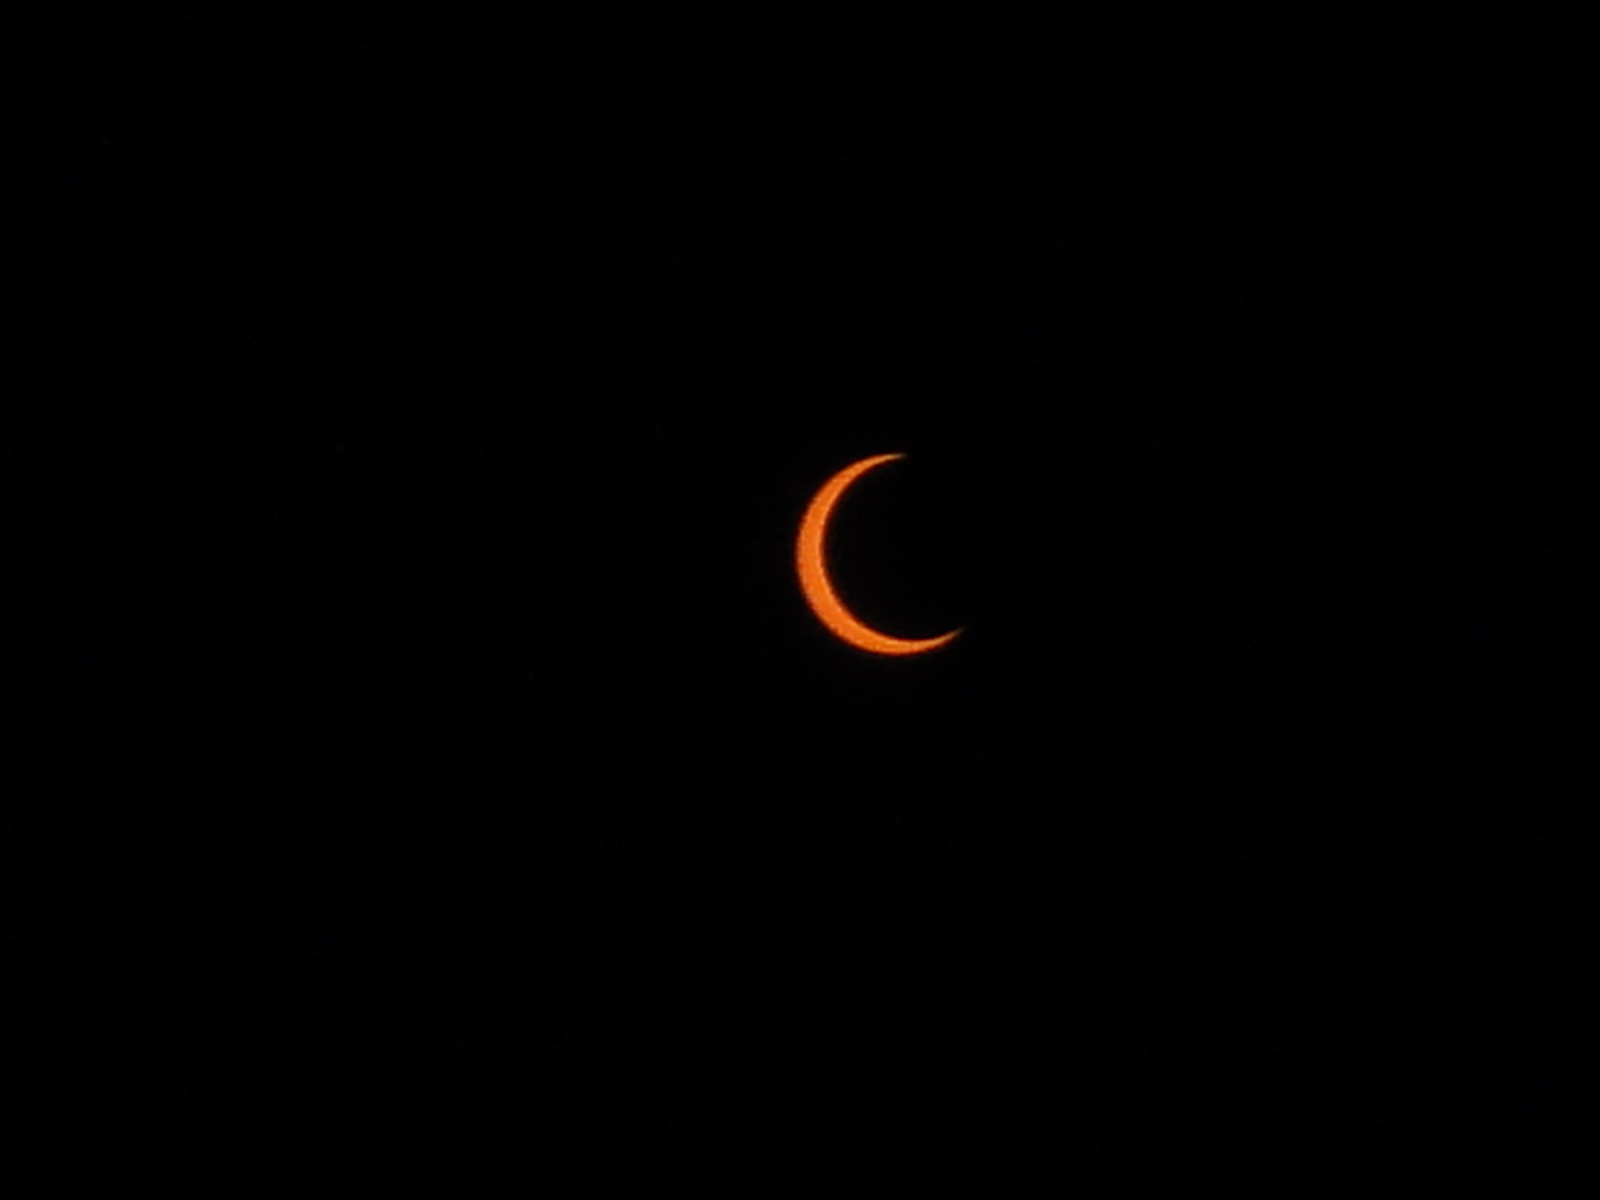 Solar_Eclipse_015.jpg